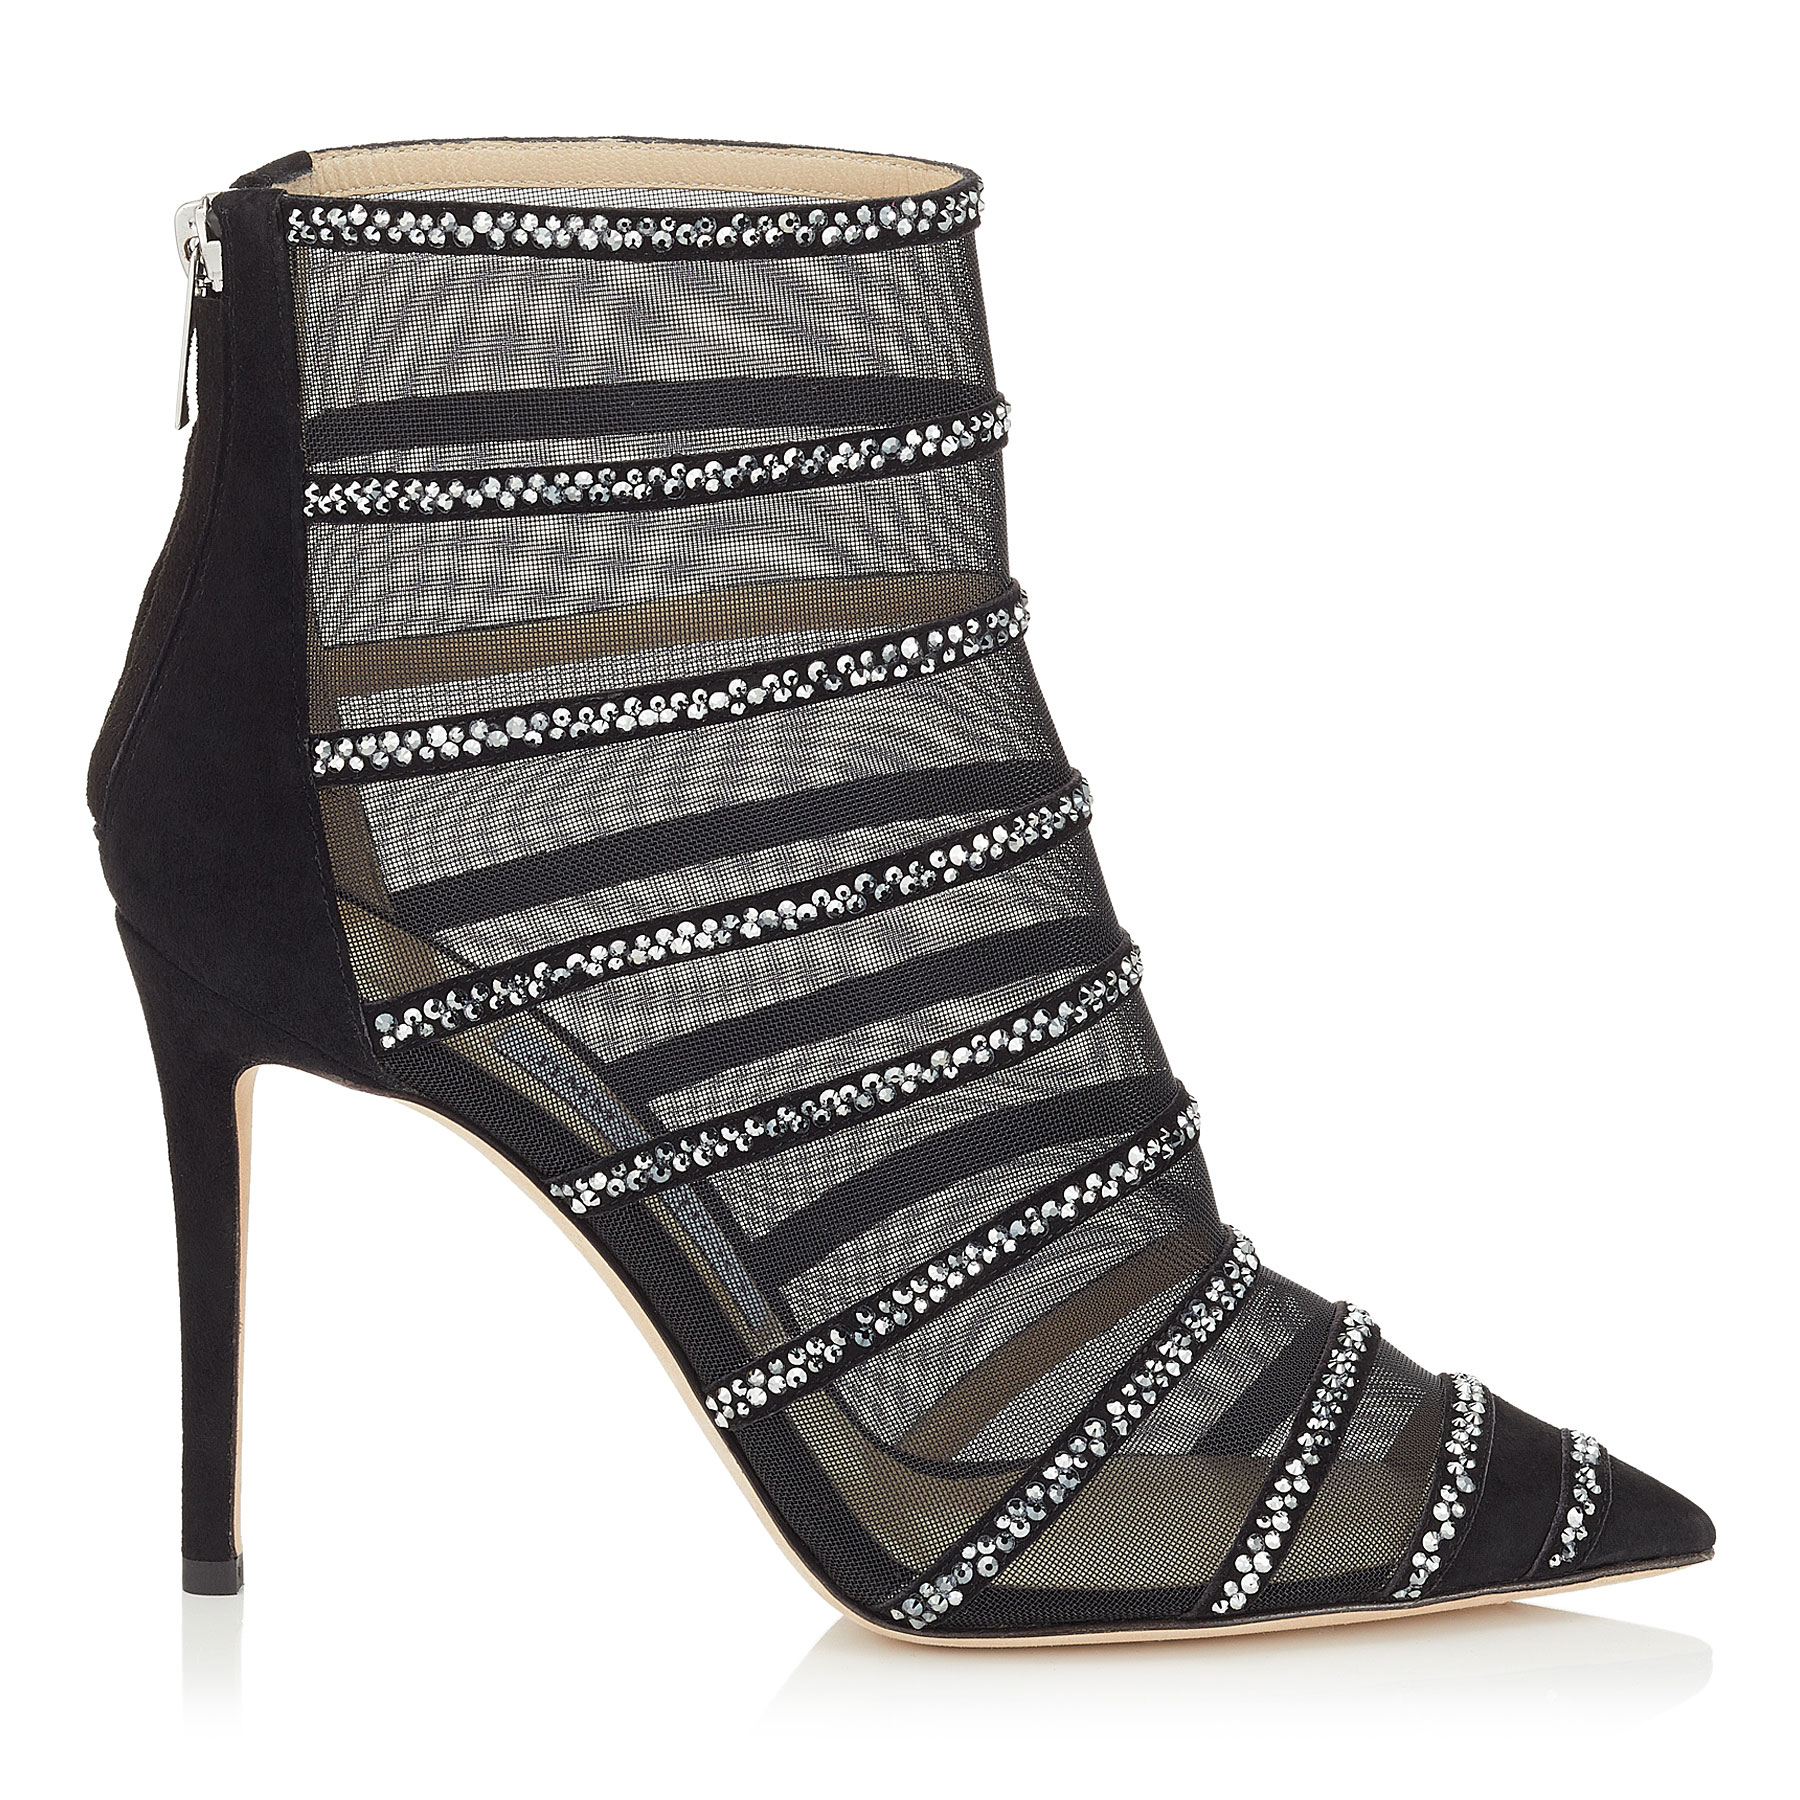 BELLE 100 Black Suede and Mesh Booties with Crystal Hotfix by Jimmy Choo